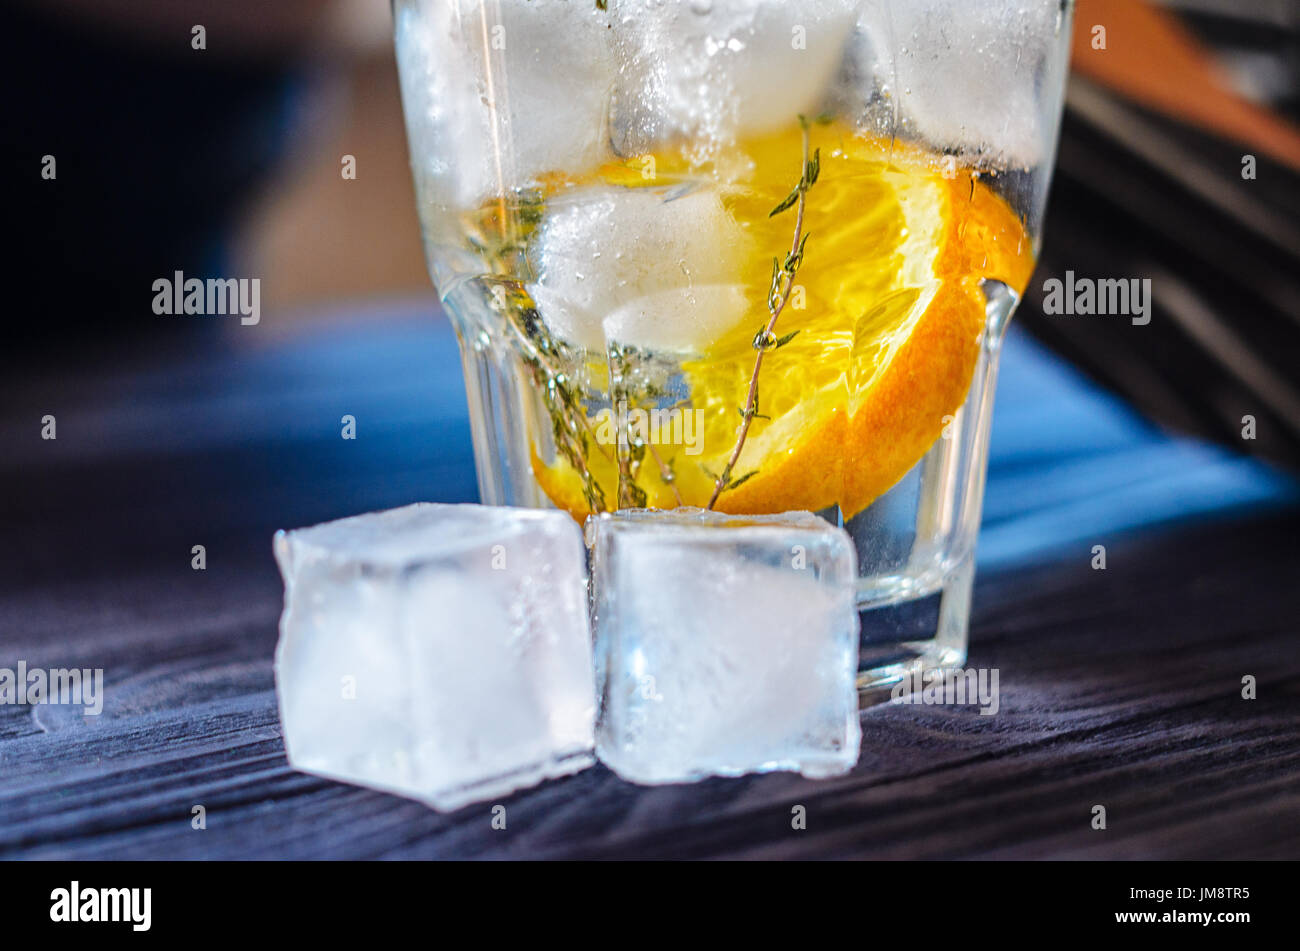 Alcoholic drink with lemon and ice in a glass on a old dark wooden table. Close up view of cold drink Stock Photo